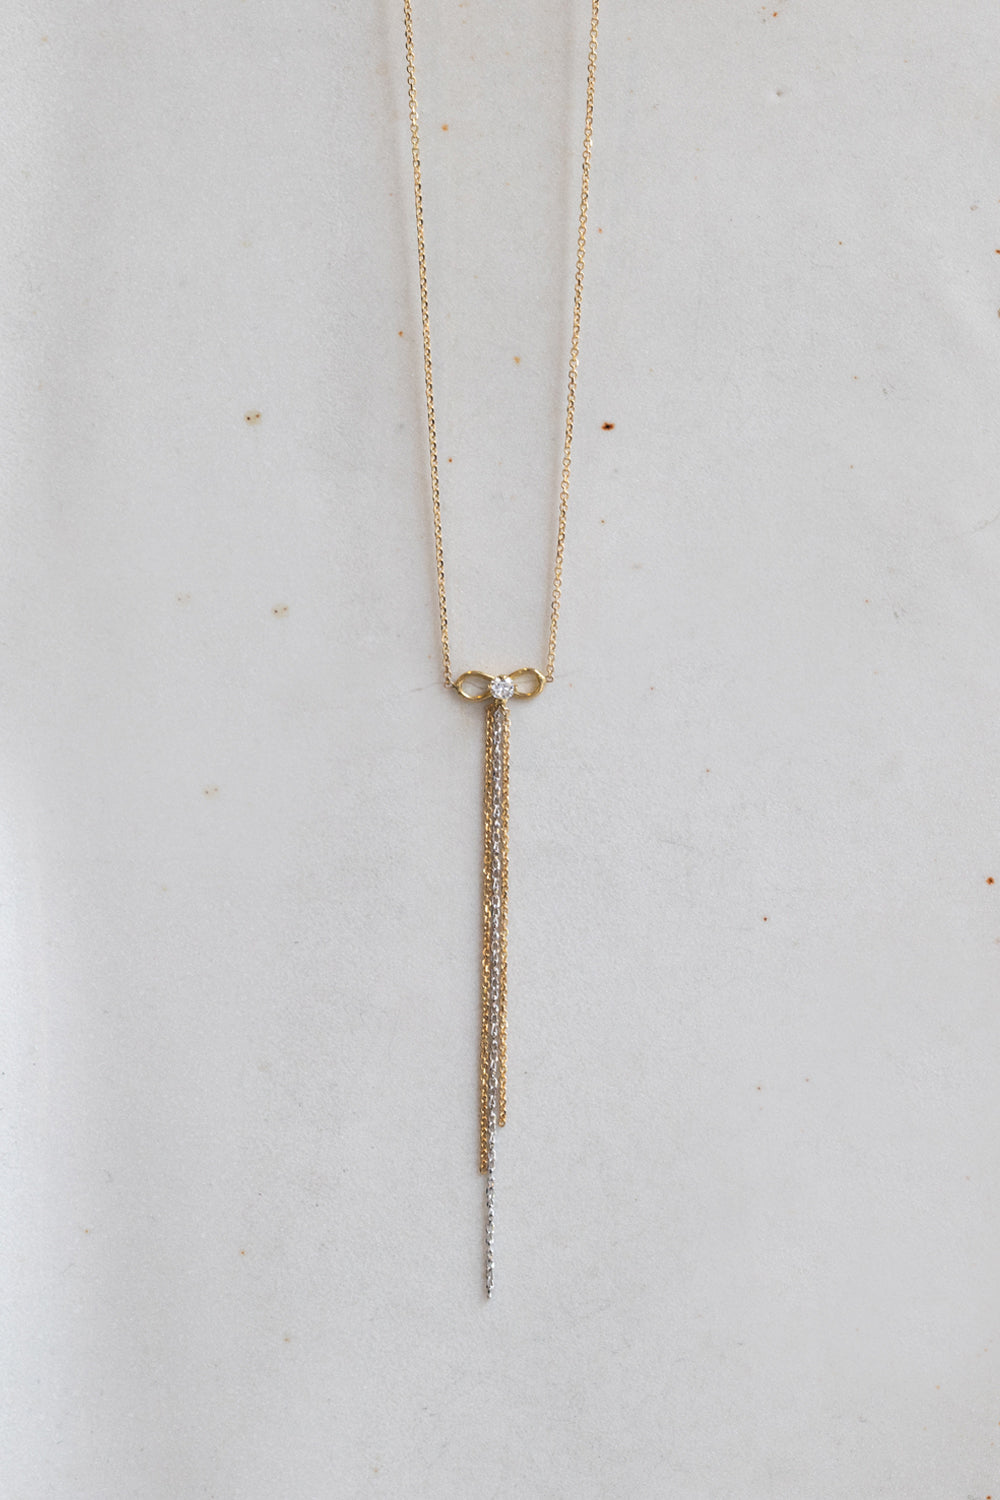 18 CT YELLOW GOLD FINE CHAIN BOW NECKLACE SET WITH WHITE BRILLIANT CUT DIAMOND